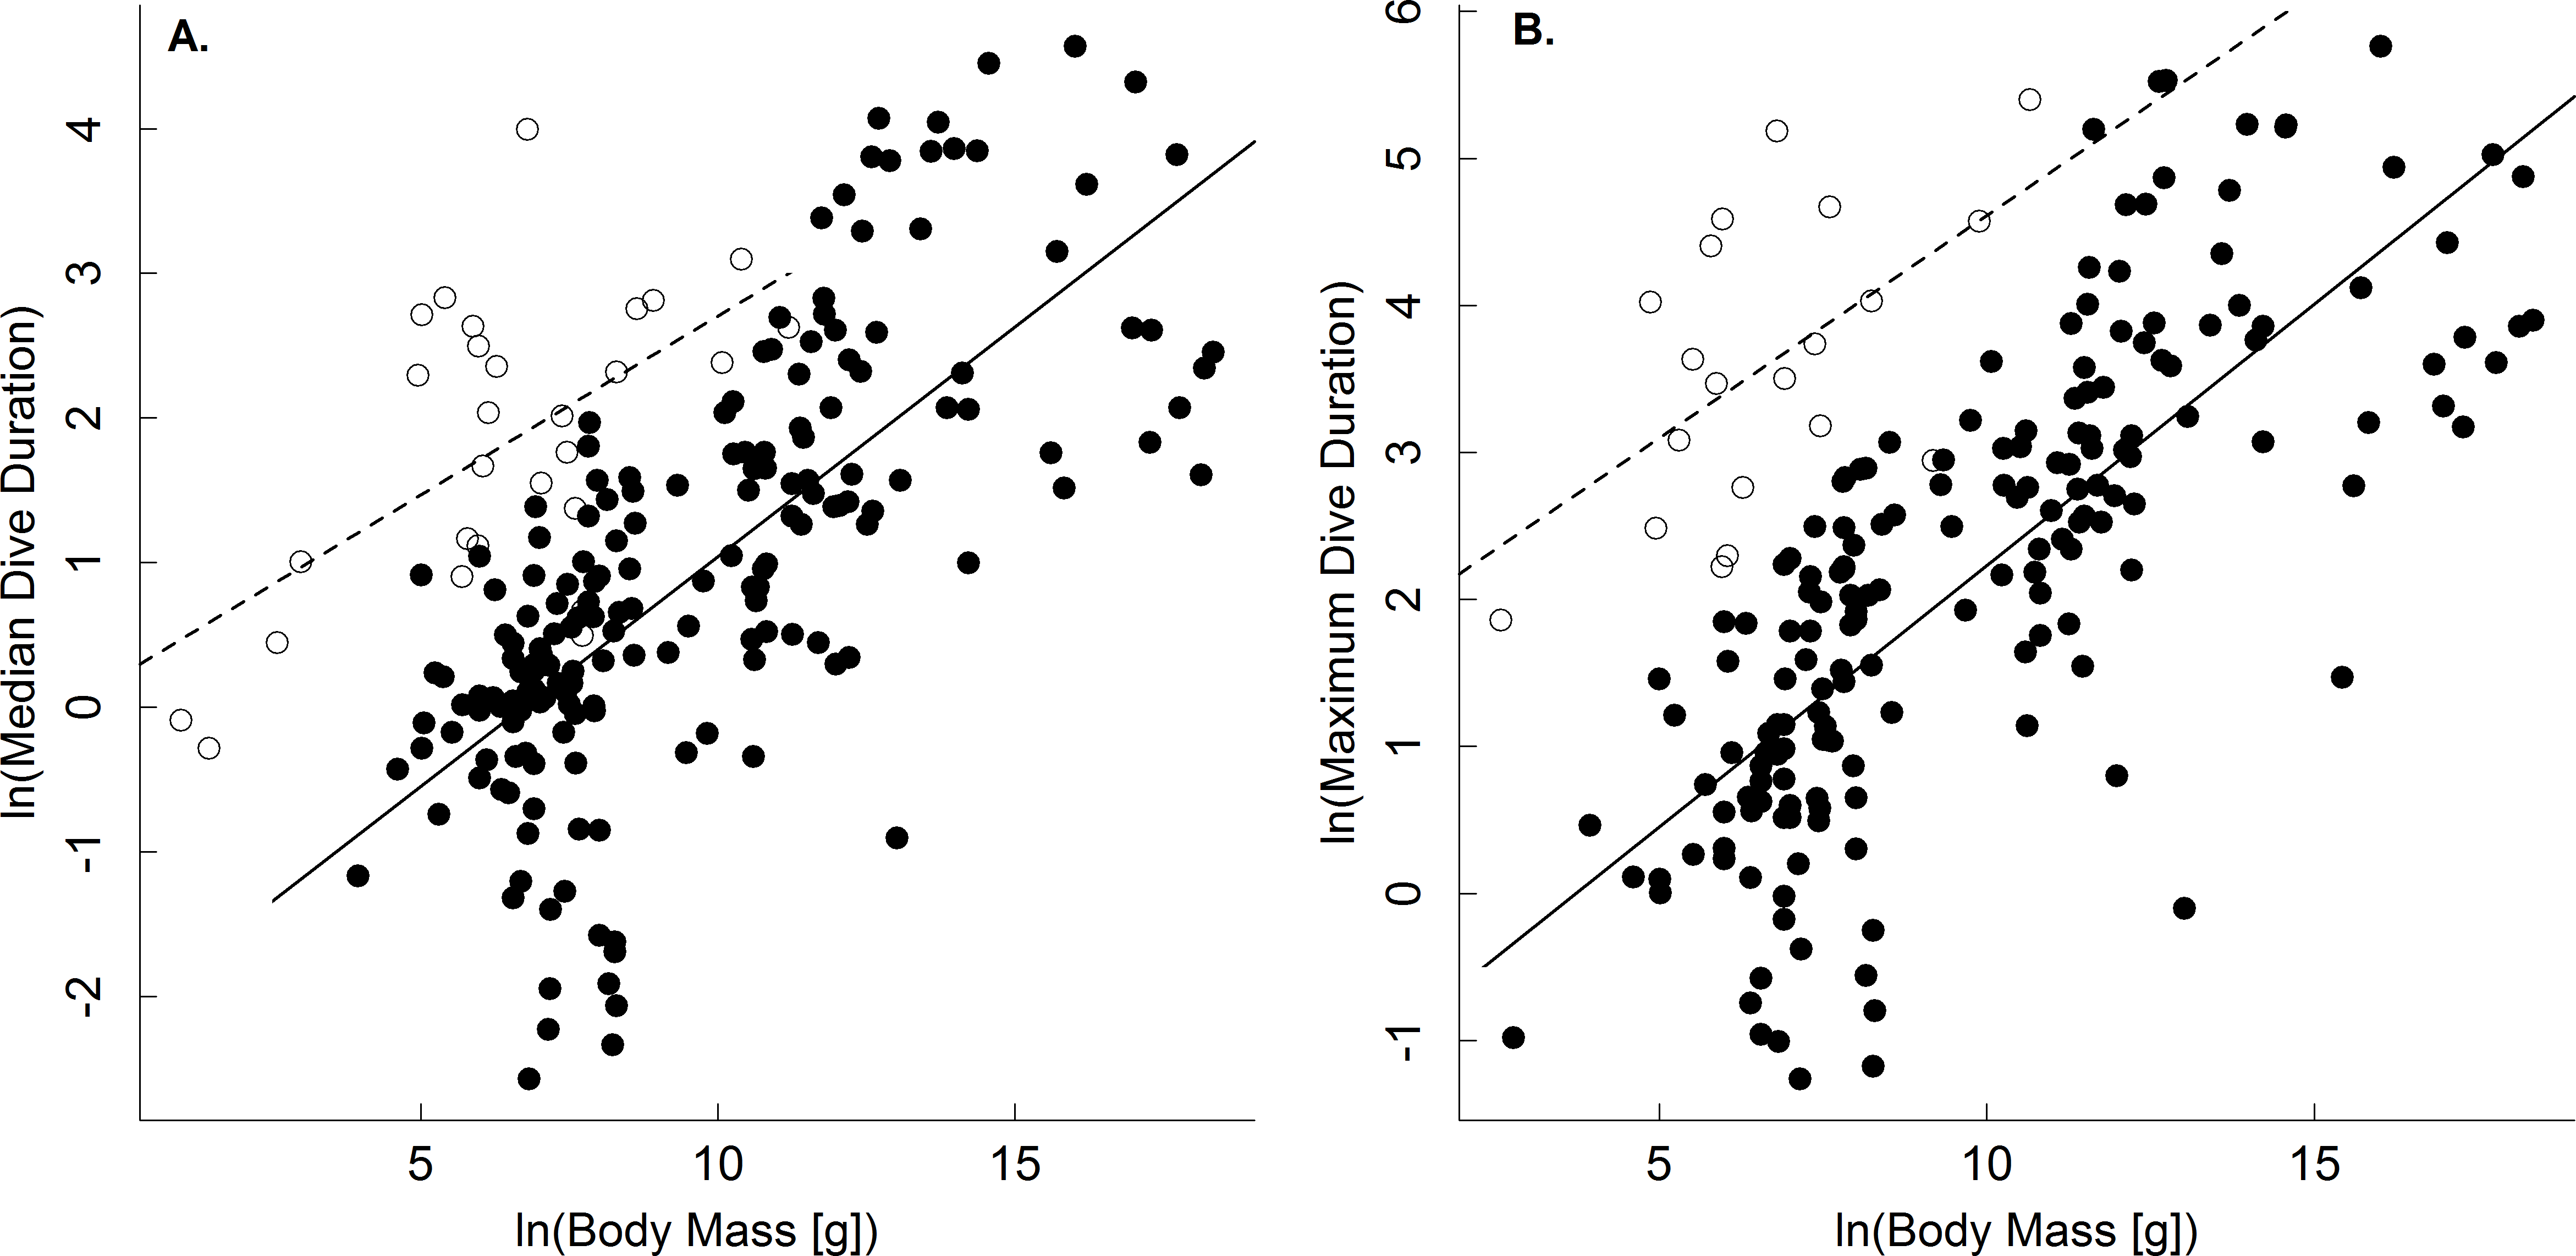 common metabolic constraints on dive duration in endothermic and